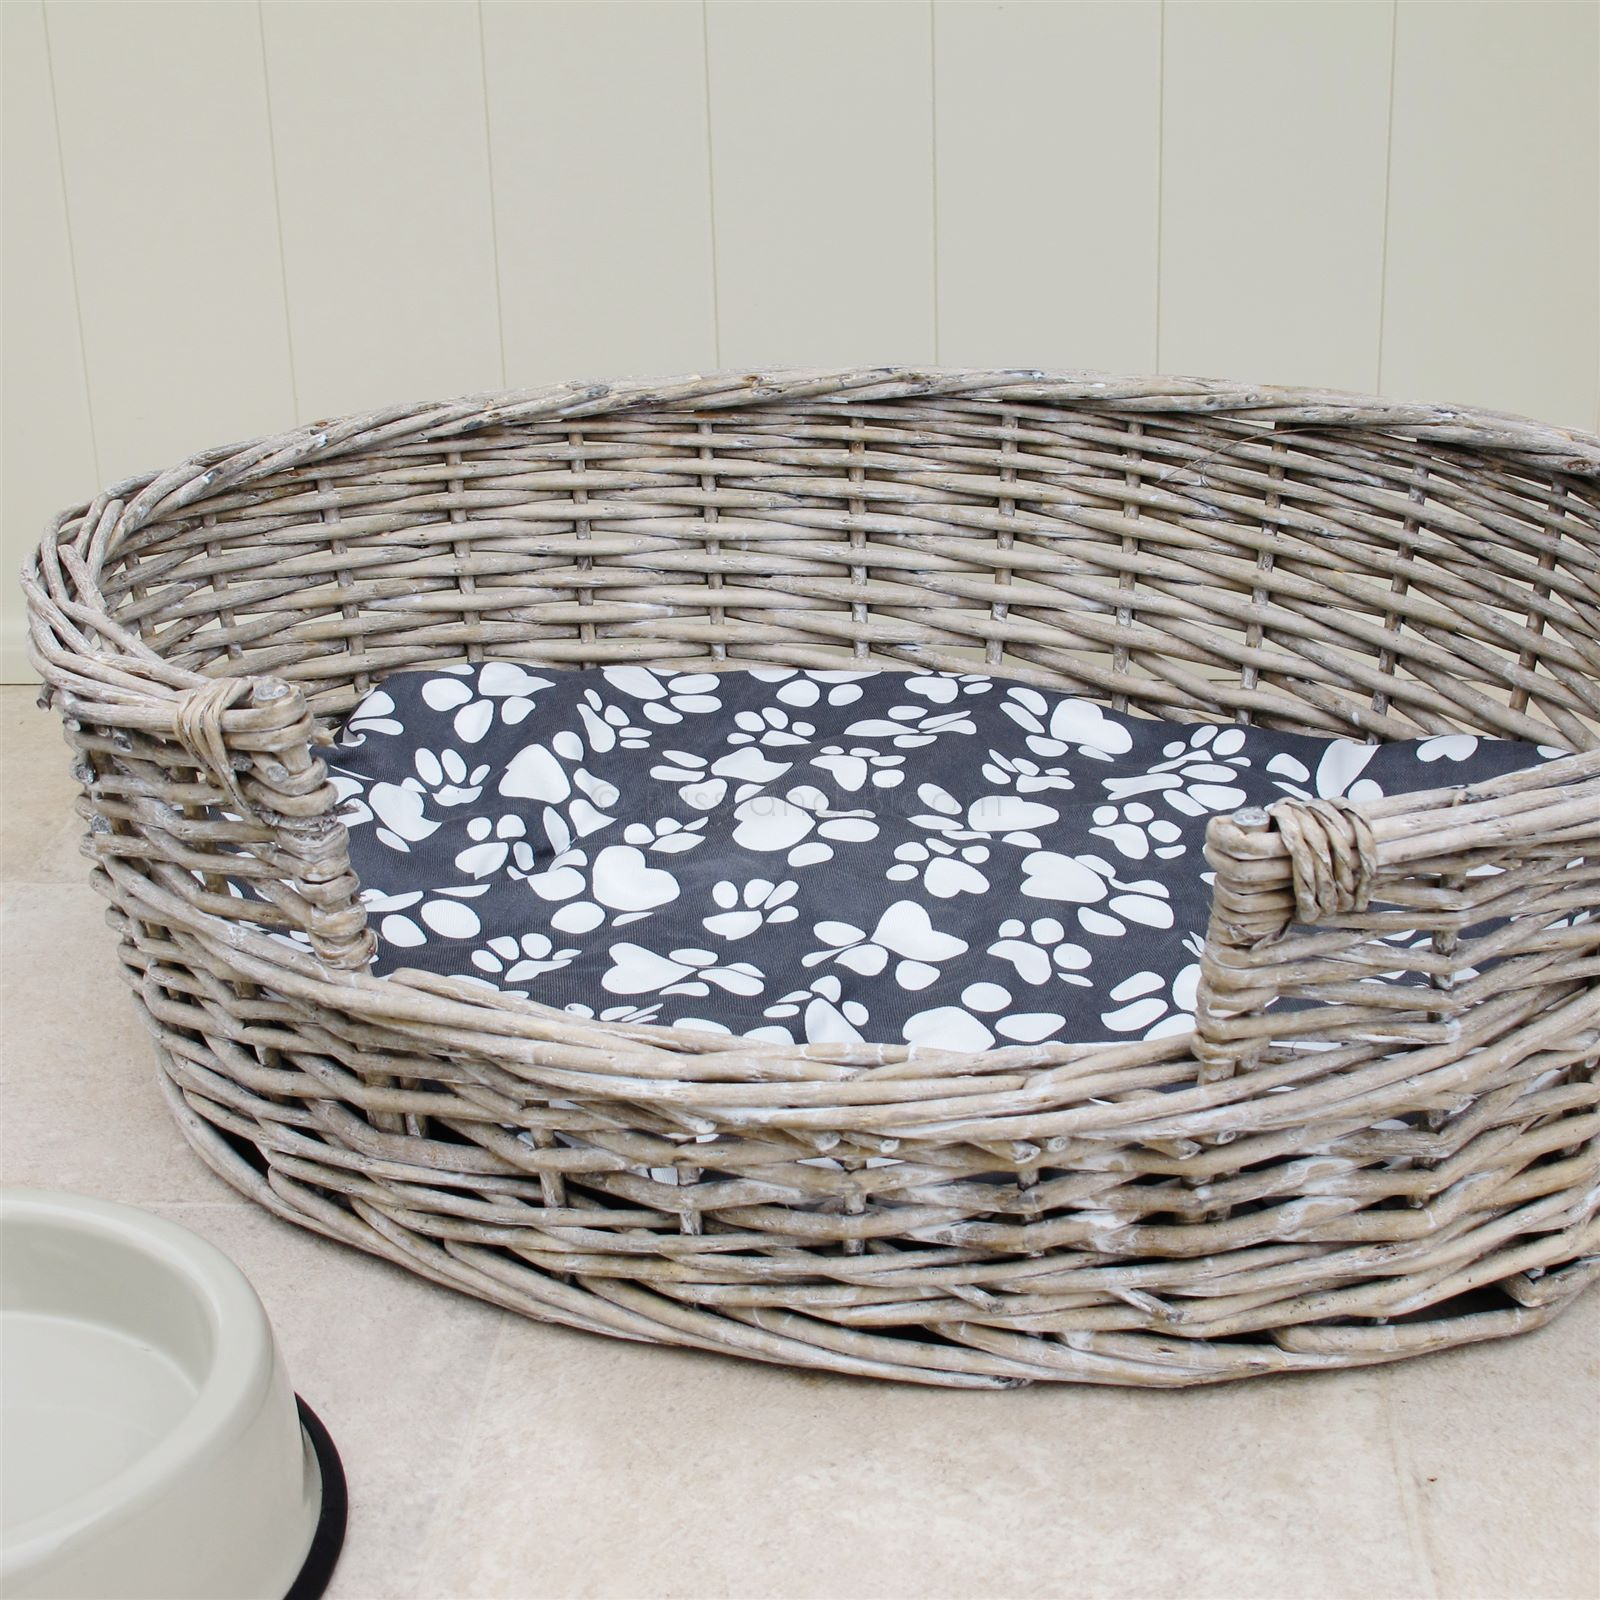 Wicker Dog Bed Basket Oval Bliss and Bloom Ltd Стиль